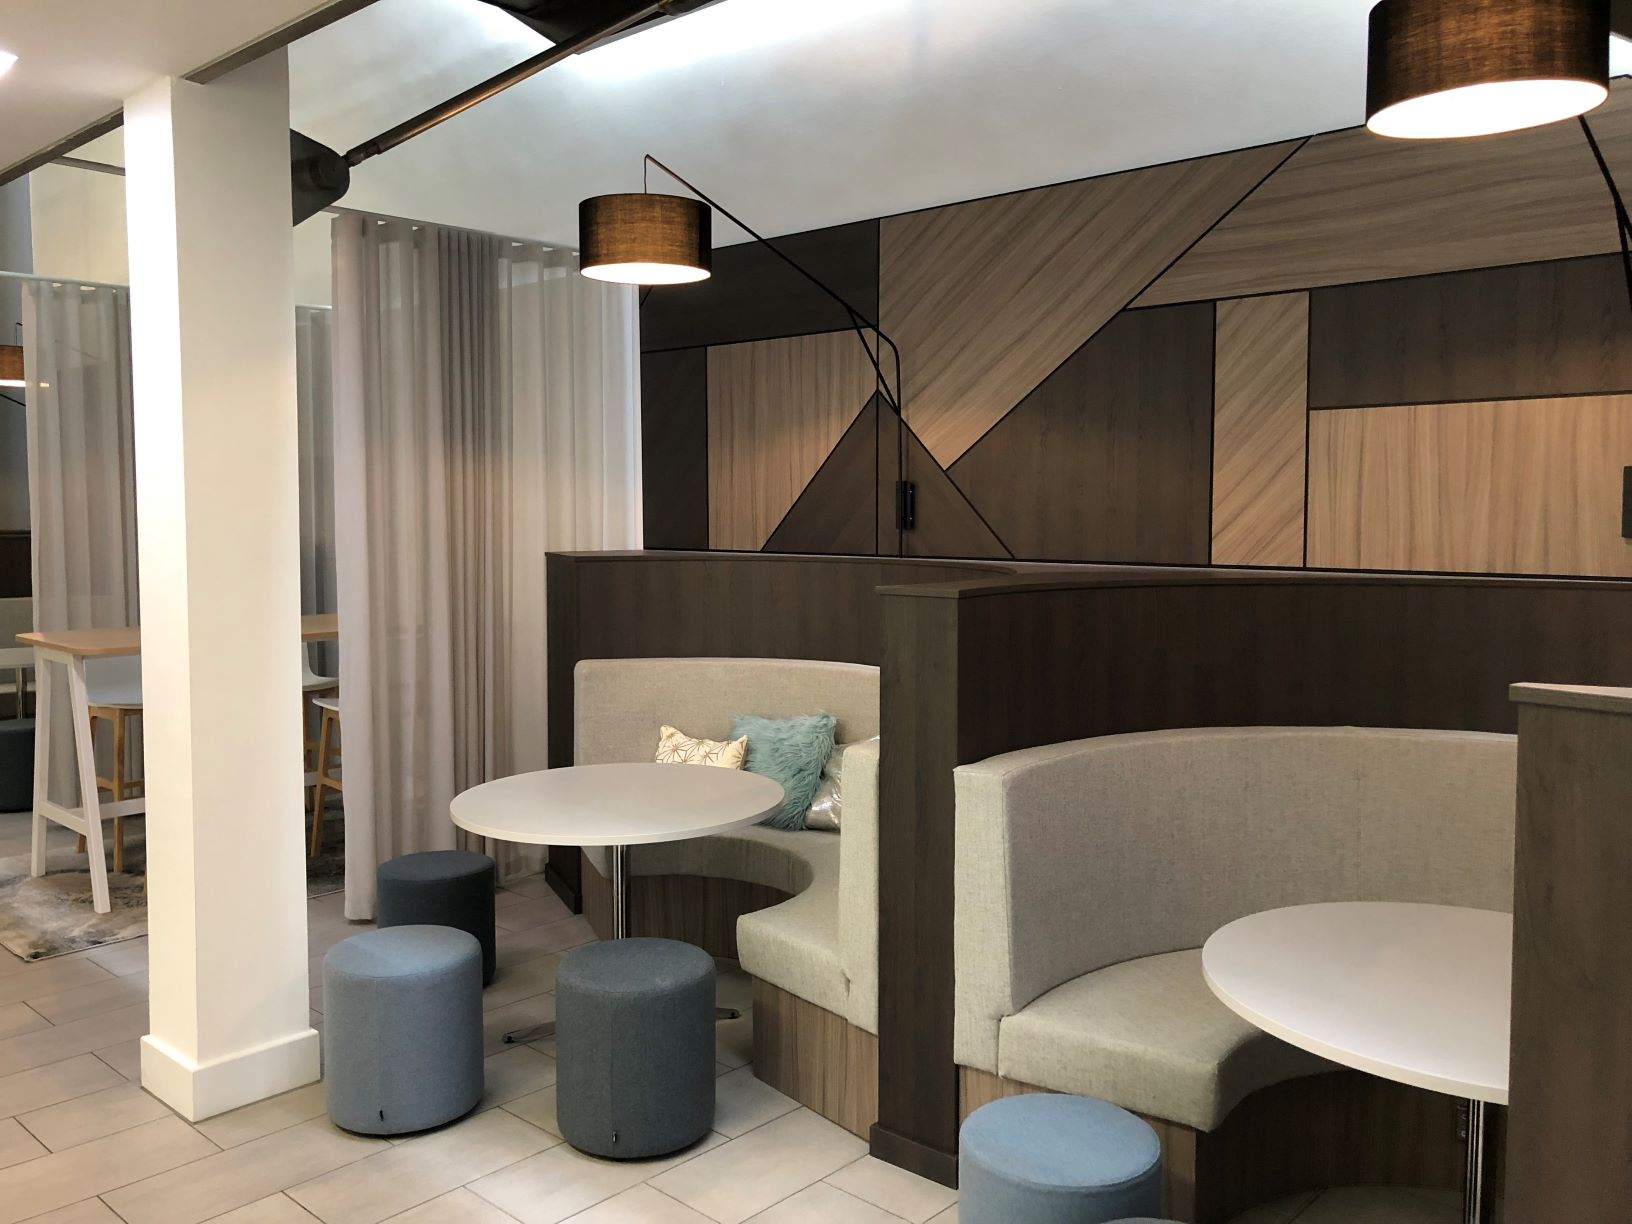 HospitalityNew Look UK – Interior Specialists – Office Fit-Out, Refurbishment, Shopfitting & Joinery ManufacturingRefurbishment